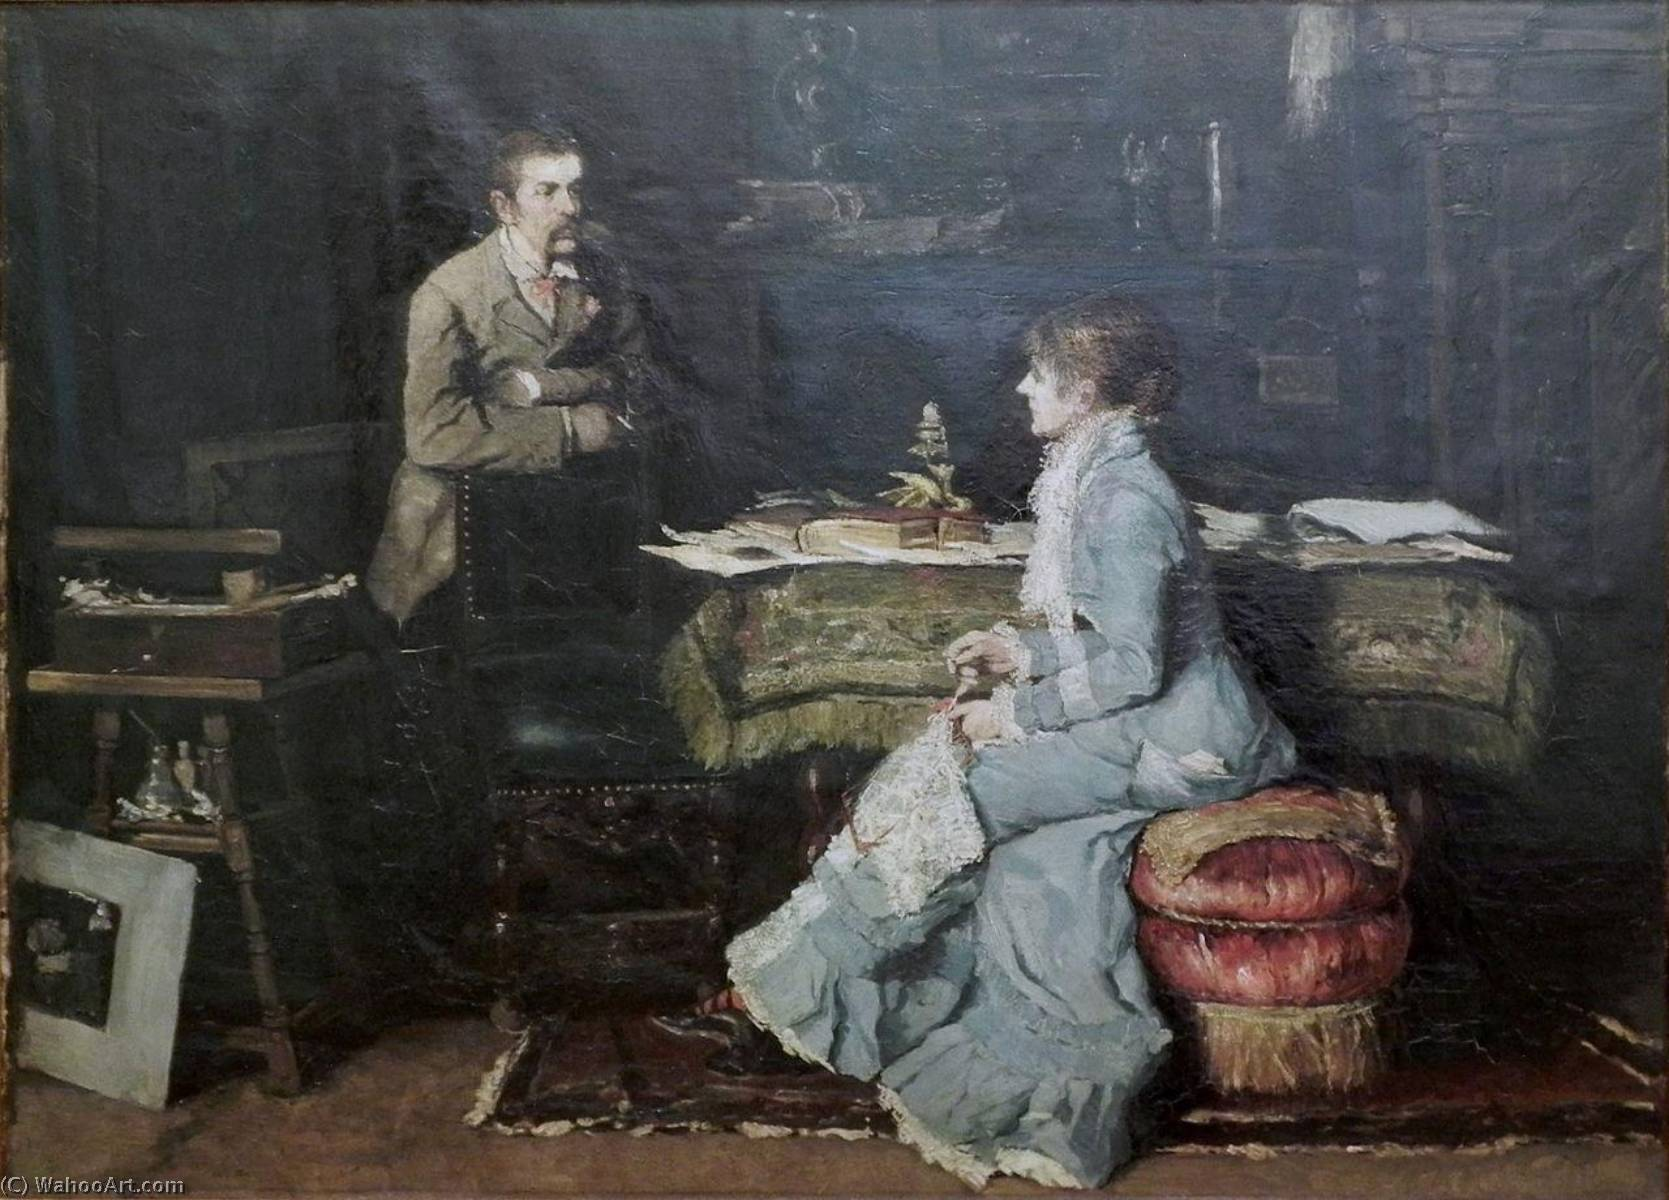 In the Studio, 1881 by Fritz Von Uhde (1848-1911)